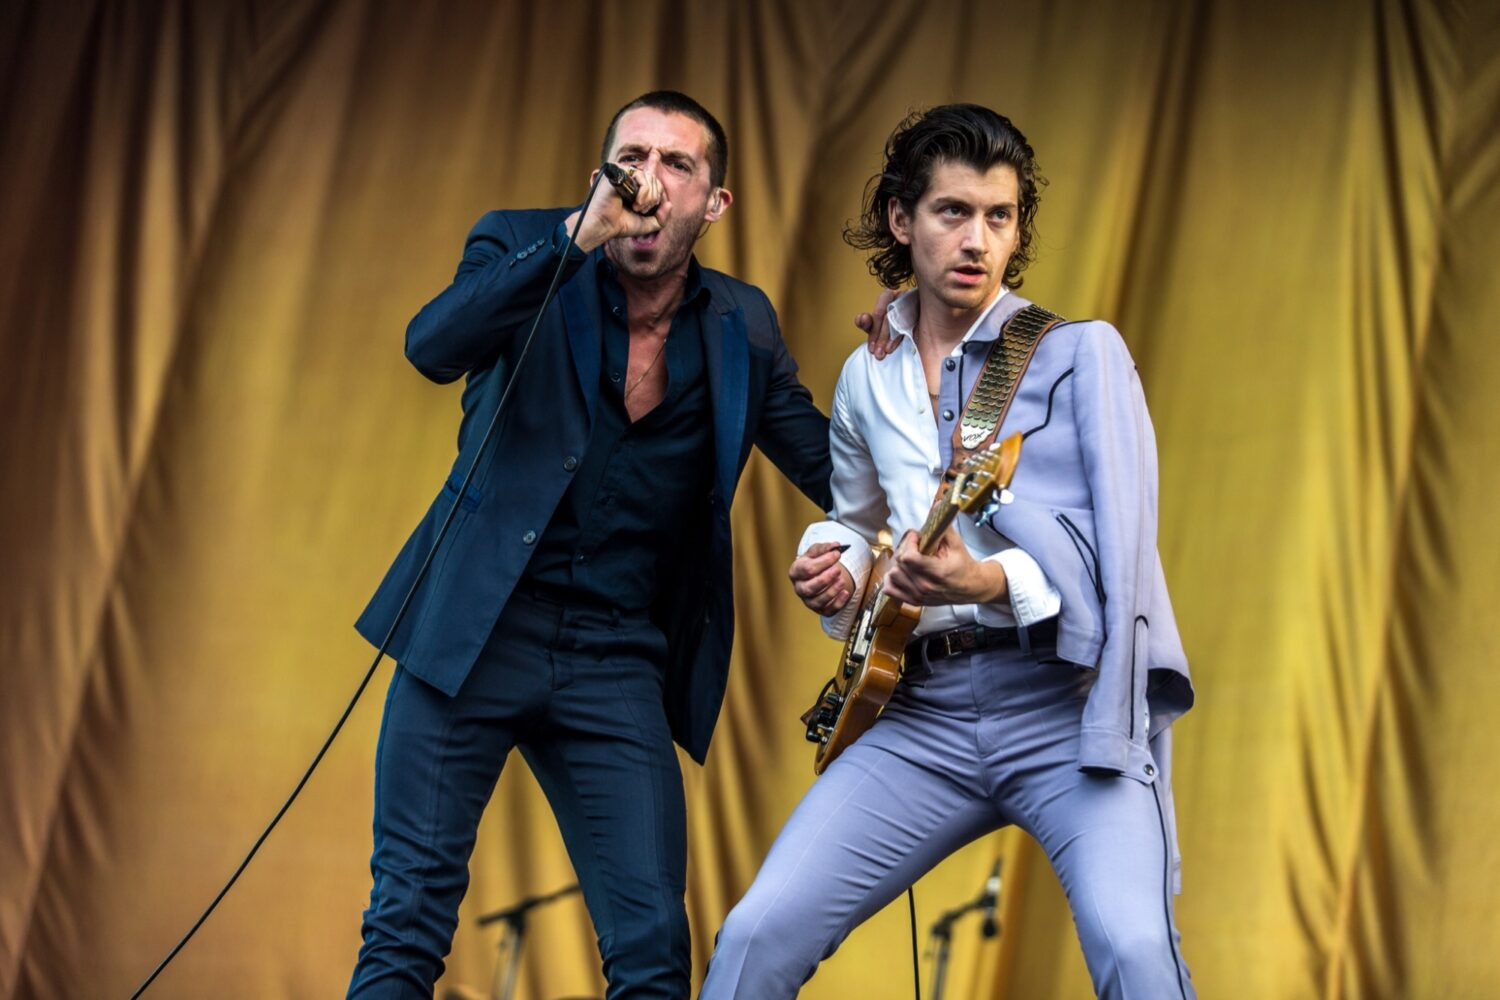 Watch Alex Turner joining Miles Kane on stage in Paris